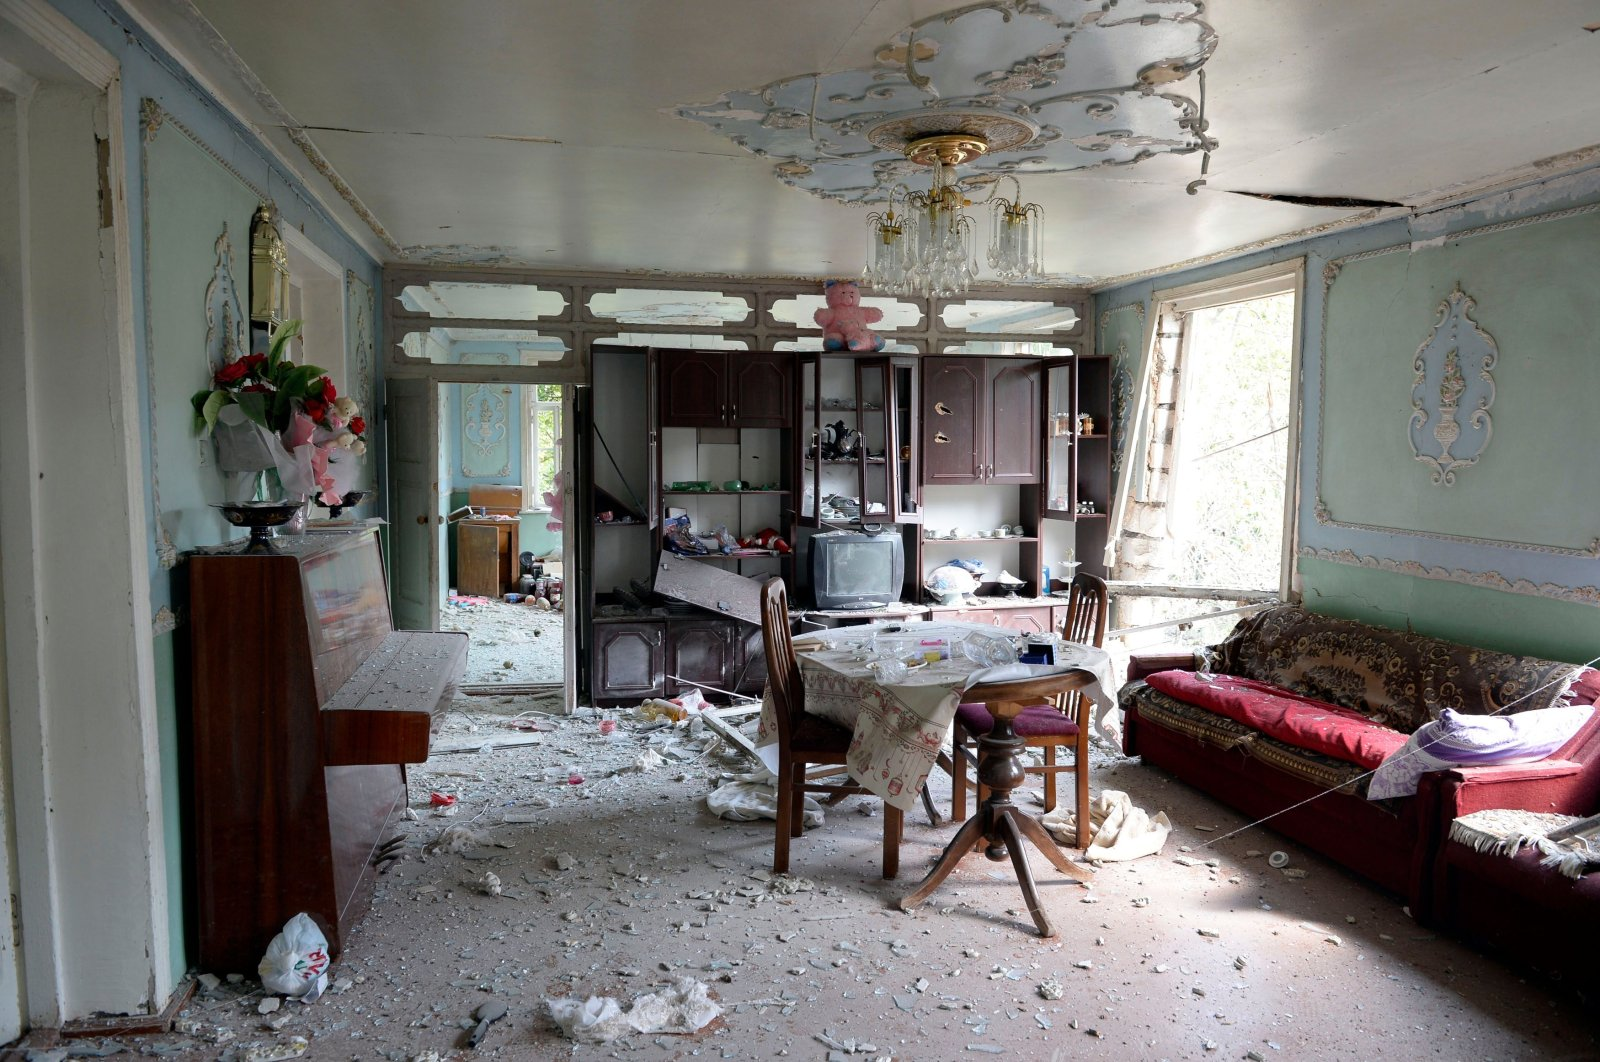 An interior view of a house damaged in a recent shelling by Armenian separatist terrorists in the village of Sahlabad outside the Azerbaijani city of Tartar on Sept. 29, 2020. (AFP Photo)